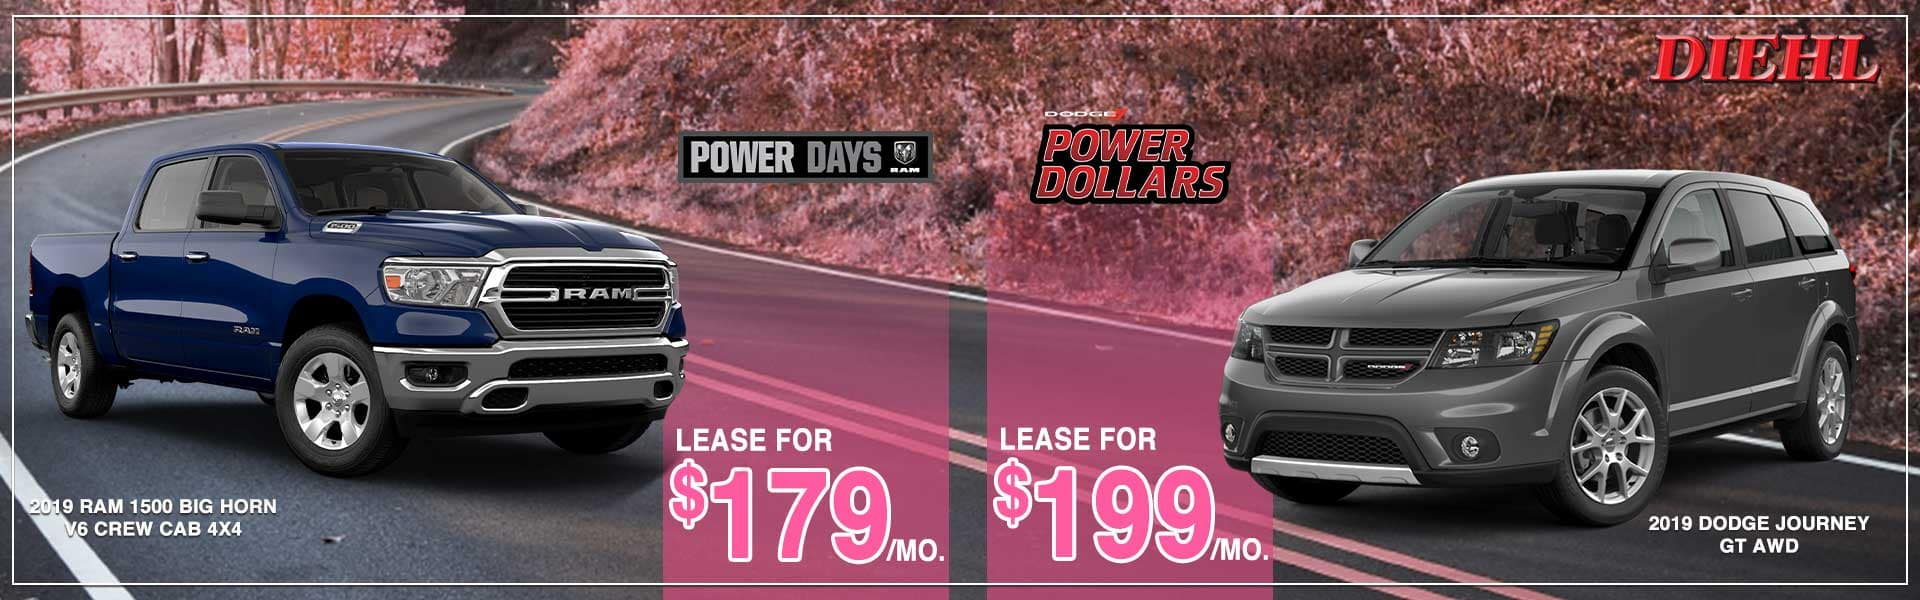 diehl auto Dodge power dollars jeep adventure days ram power days dodge lease special ram lease special Chrysler lease special jeep lease special glimmer of hope breast cancer awareness cars for a cause Diehl of Salem Ohio mopar